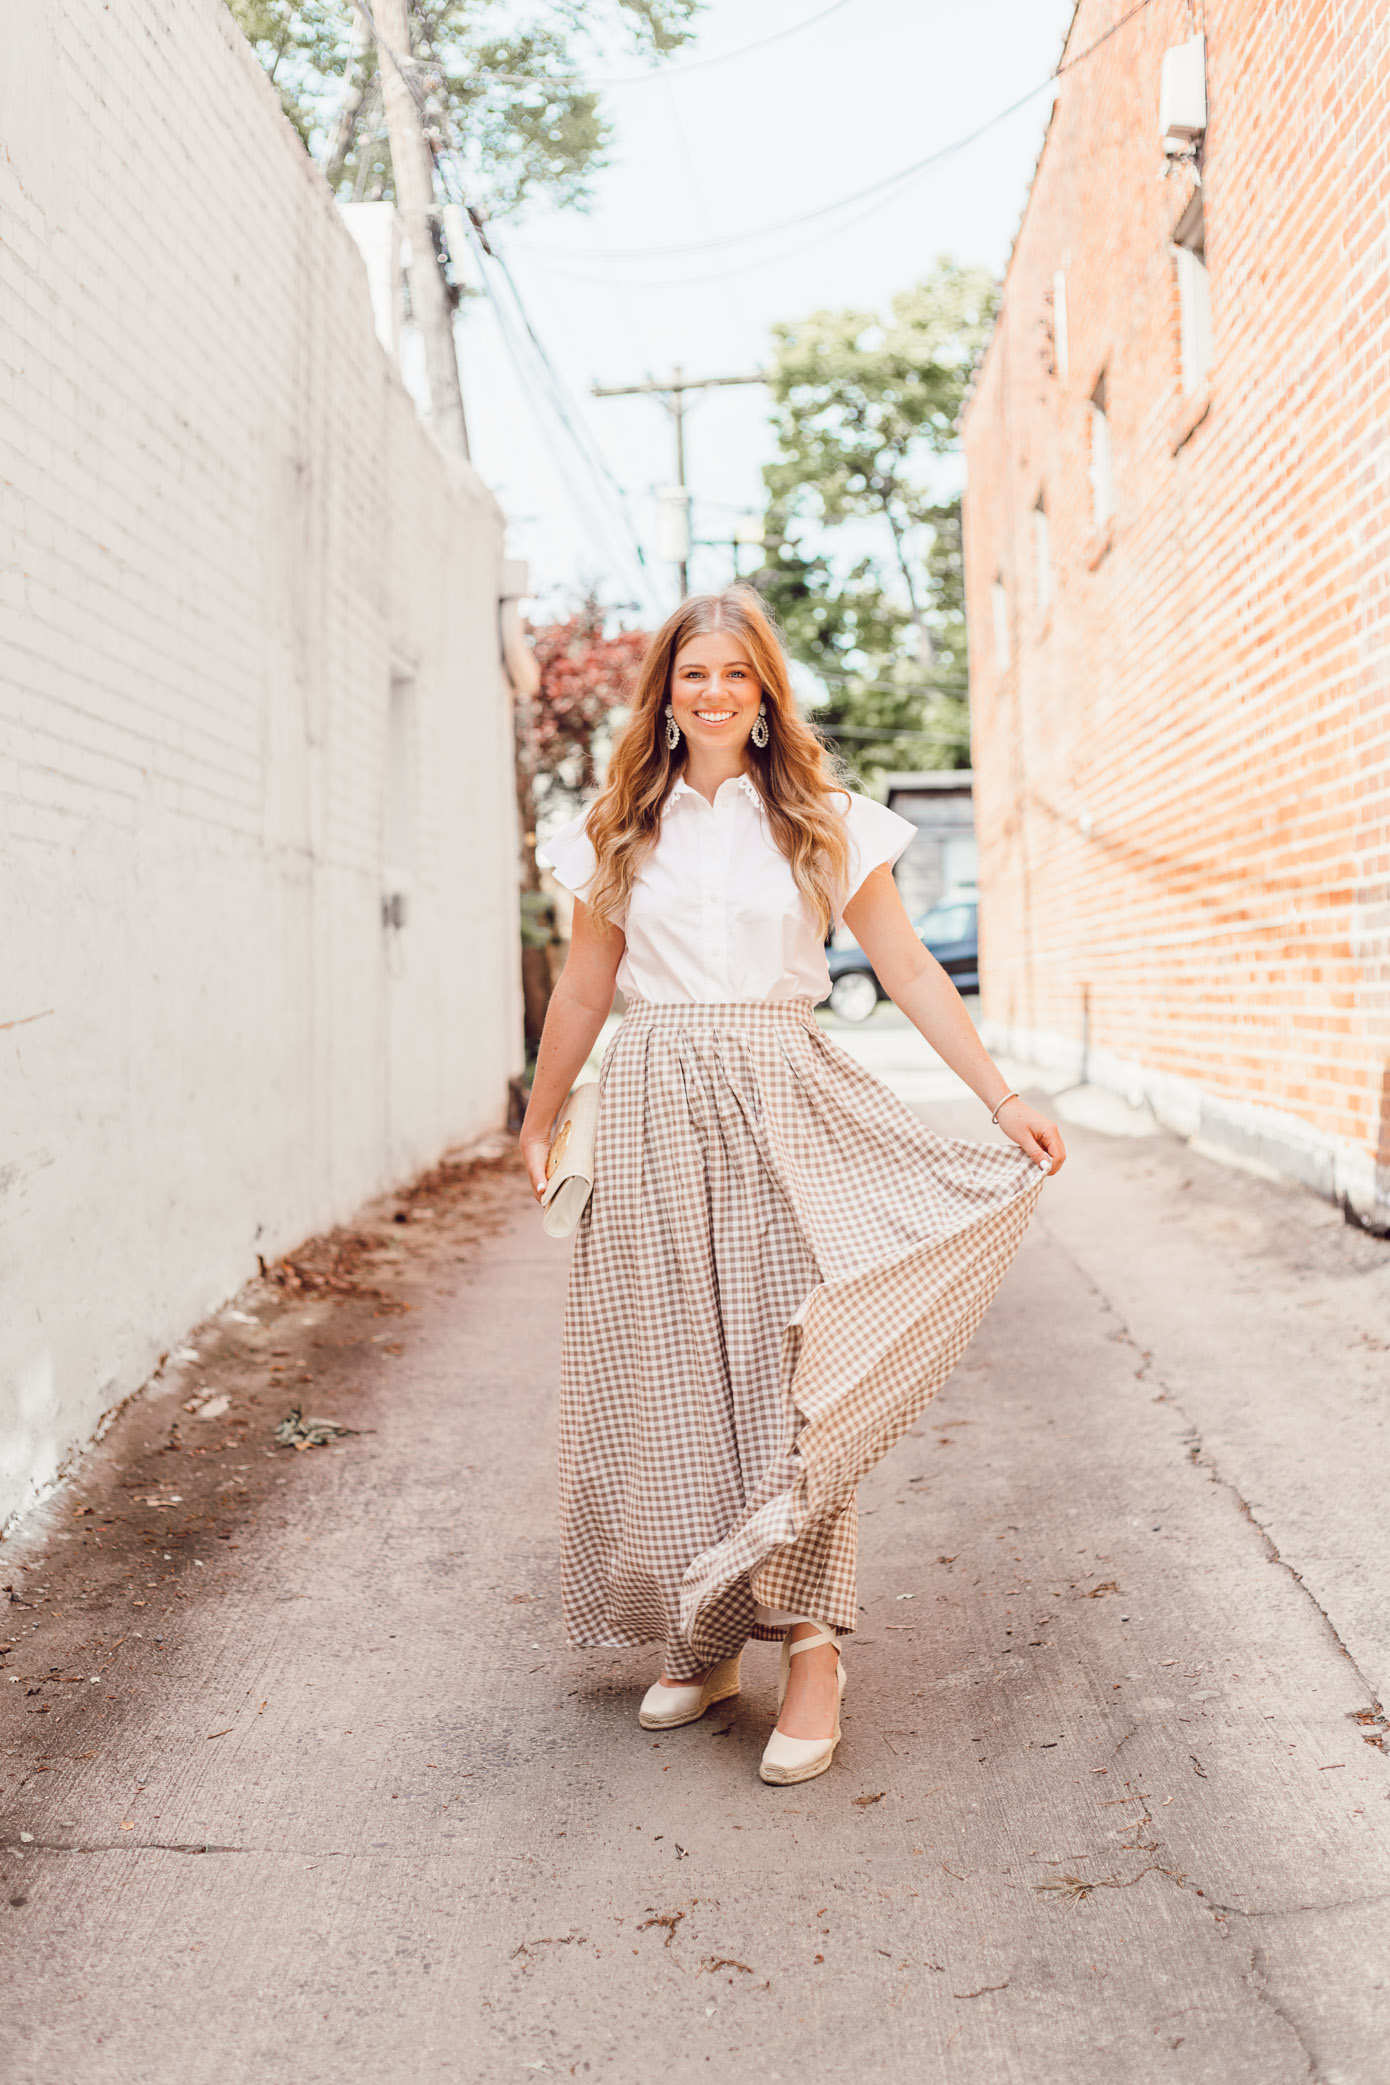 Feminine White Button Down Blouse - A Summer Gingham Maxi Skirt styled by Laura Leigh of Louella Reese #maxiskirt #gingham #southernstyle